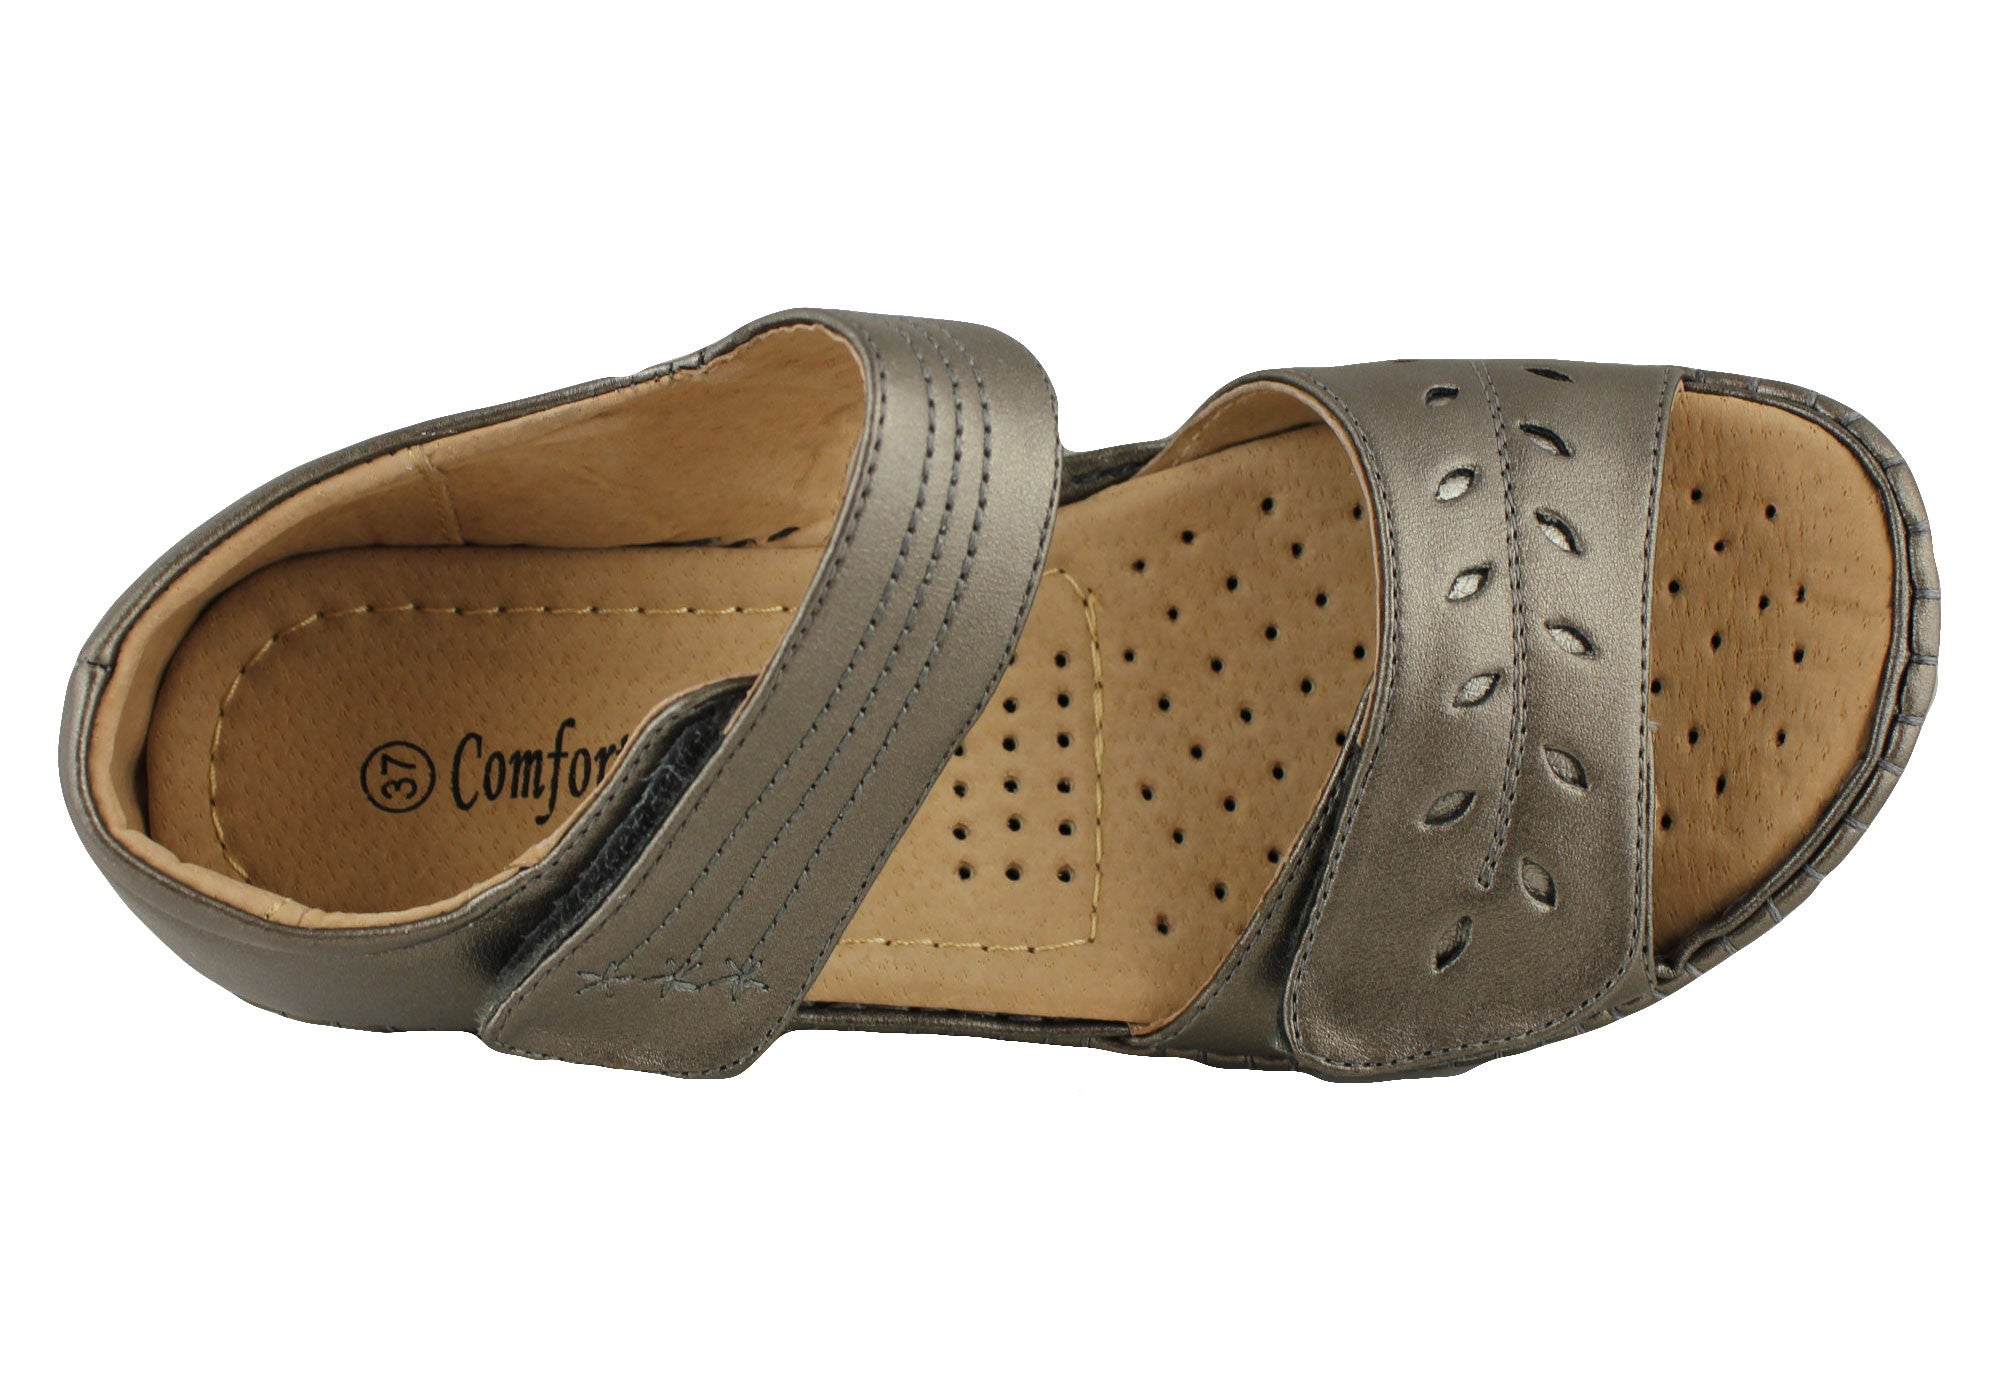 Comfort Leisure Patsy Womens Comfort Sandals